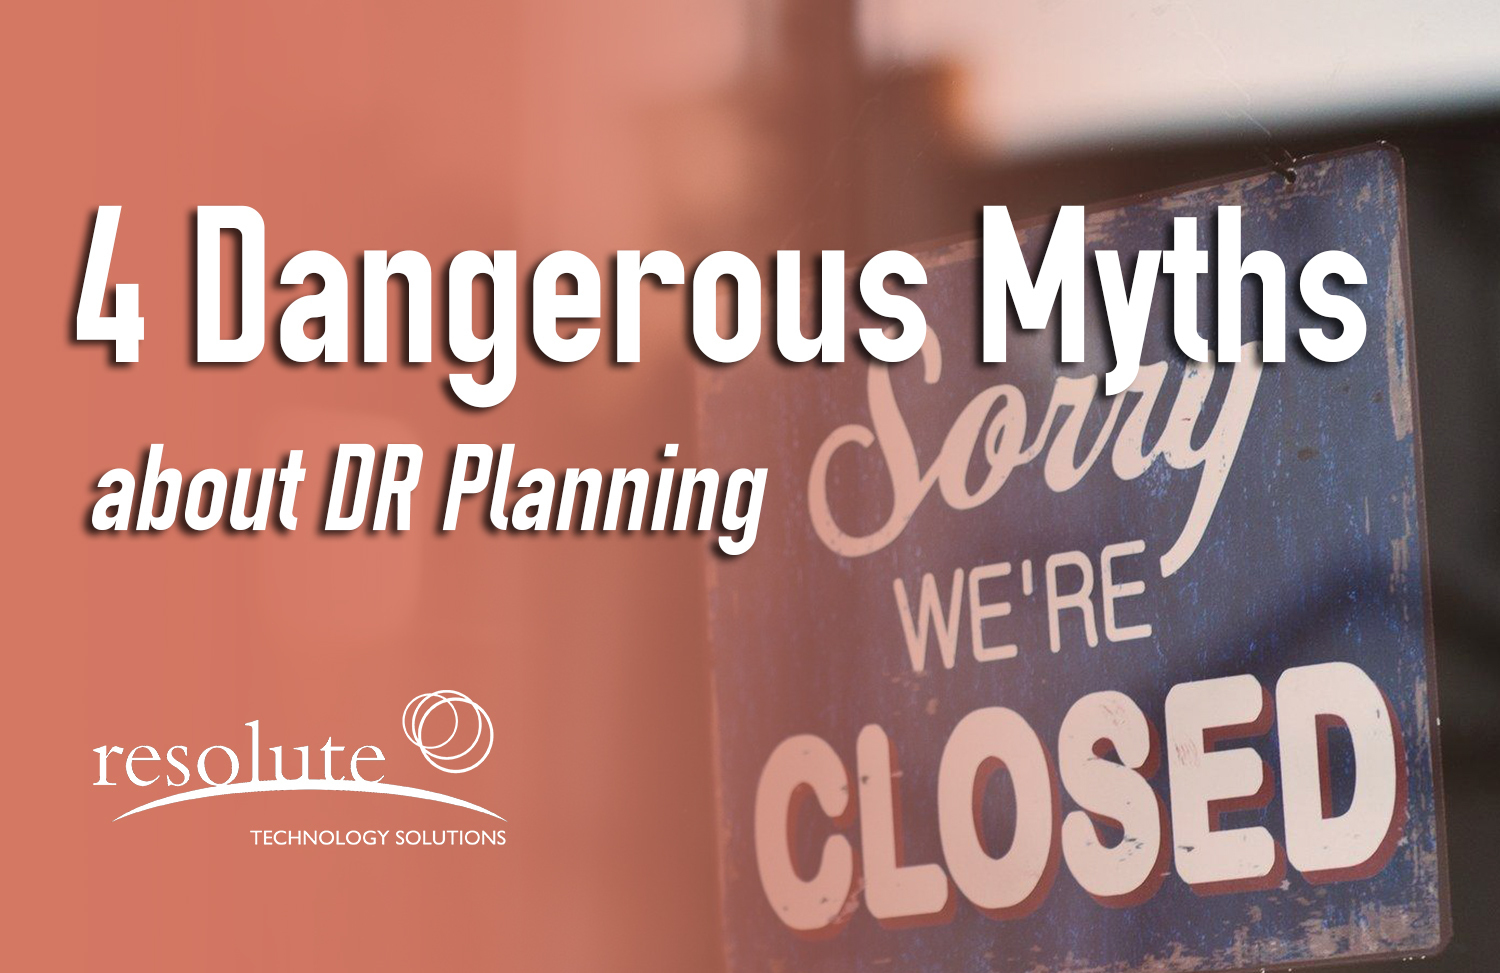 4 Dangerous Myths about DR Planning